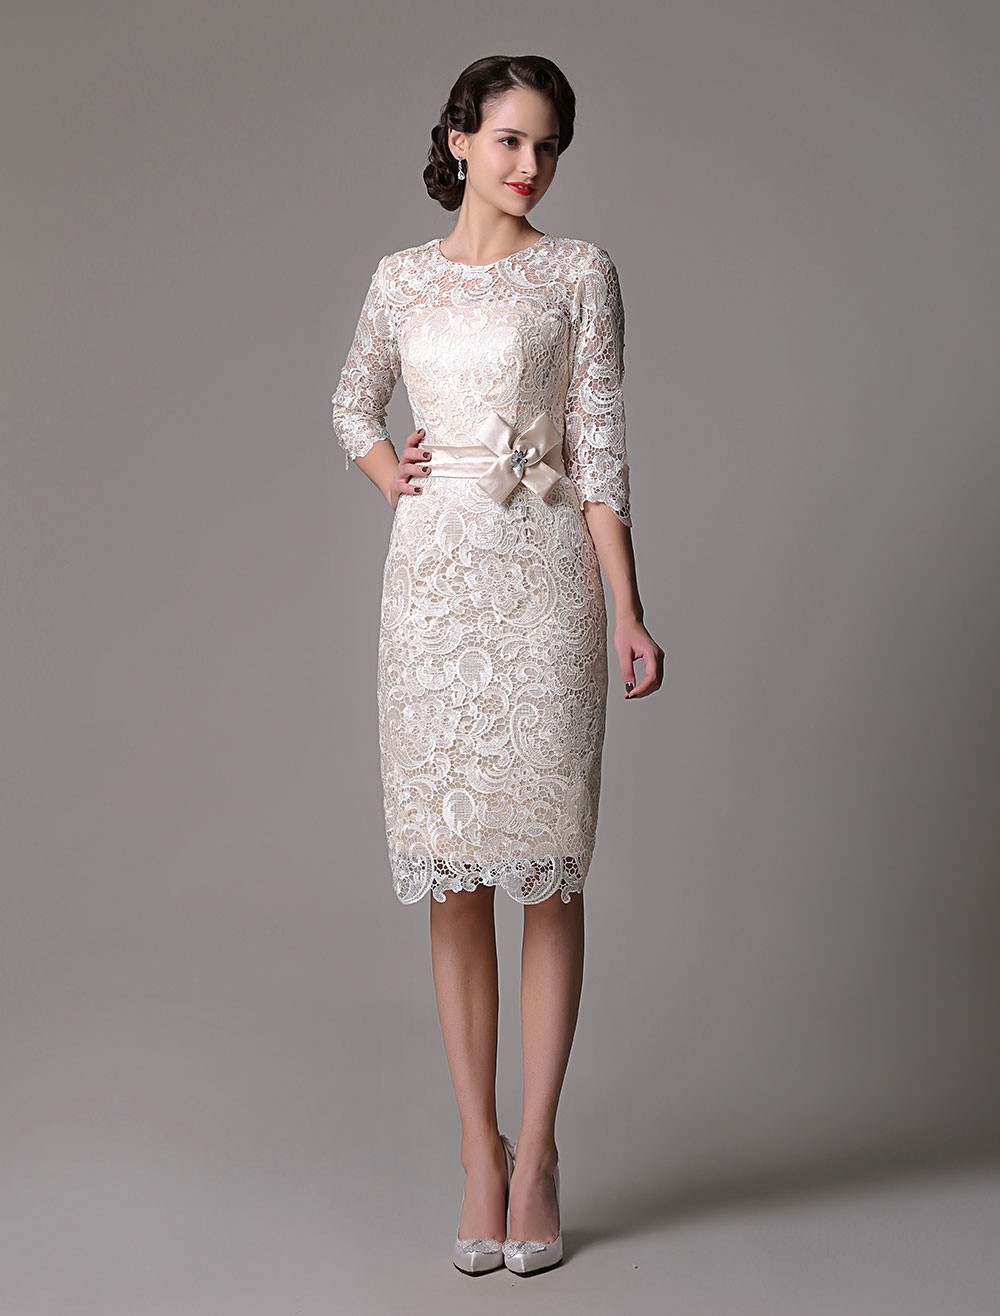 1e7cb49e9f2 Wedding Guest Dresses Lace Sheath Champagne Cocktail Dress Knee Length Half  Sleeves Mother Dress With Satin Belt - Milanoo.com